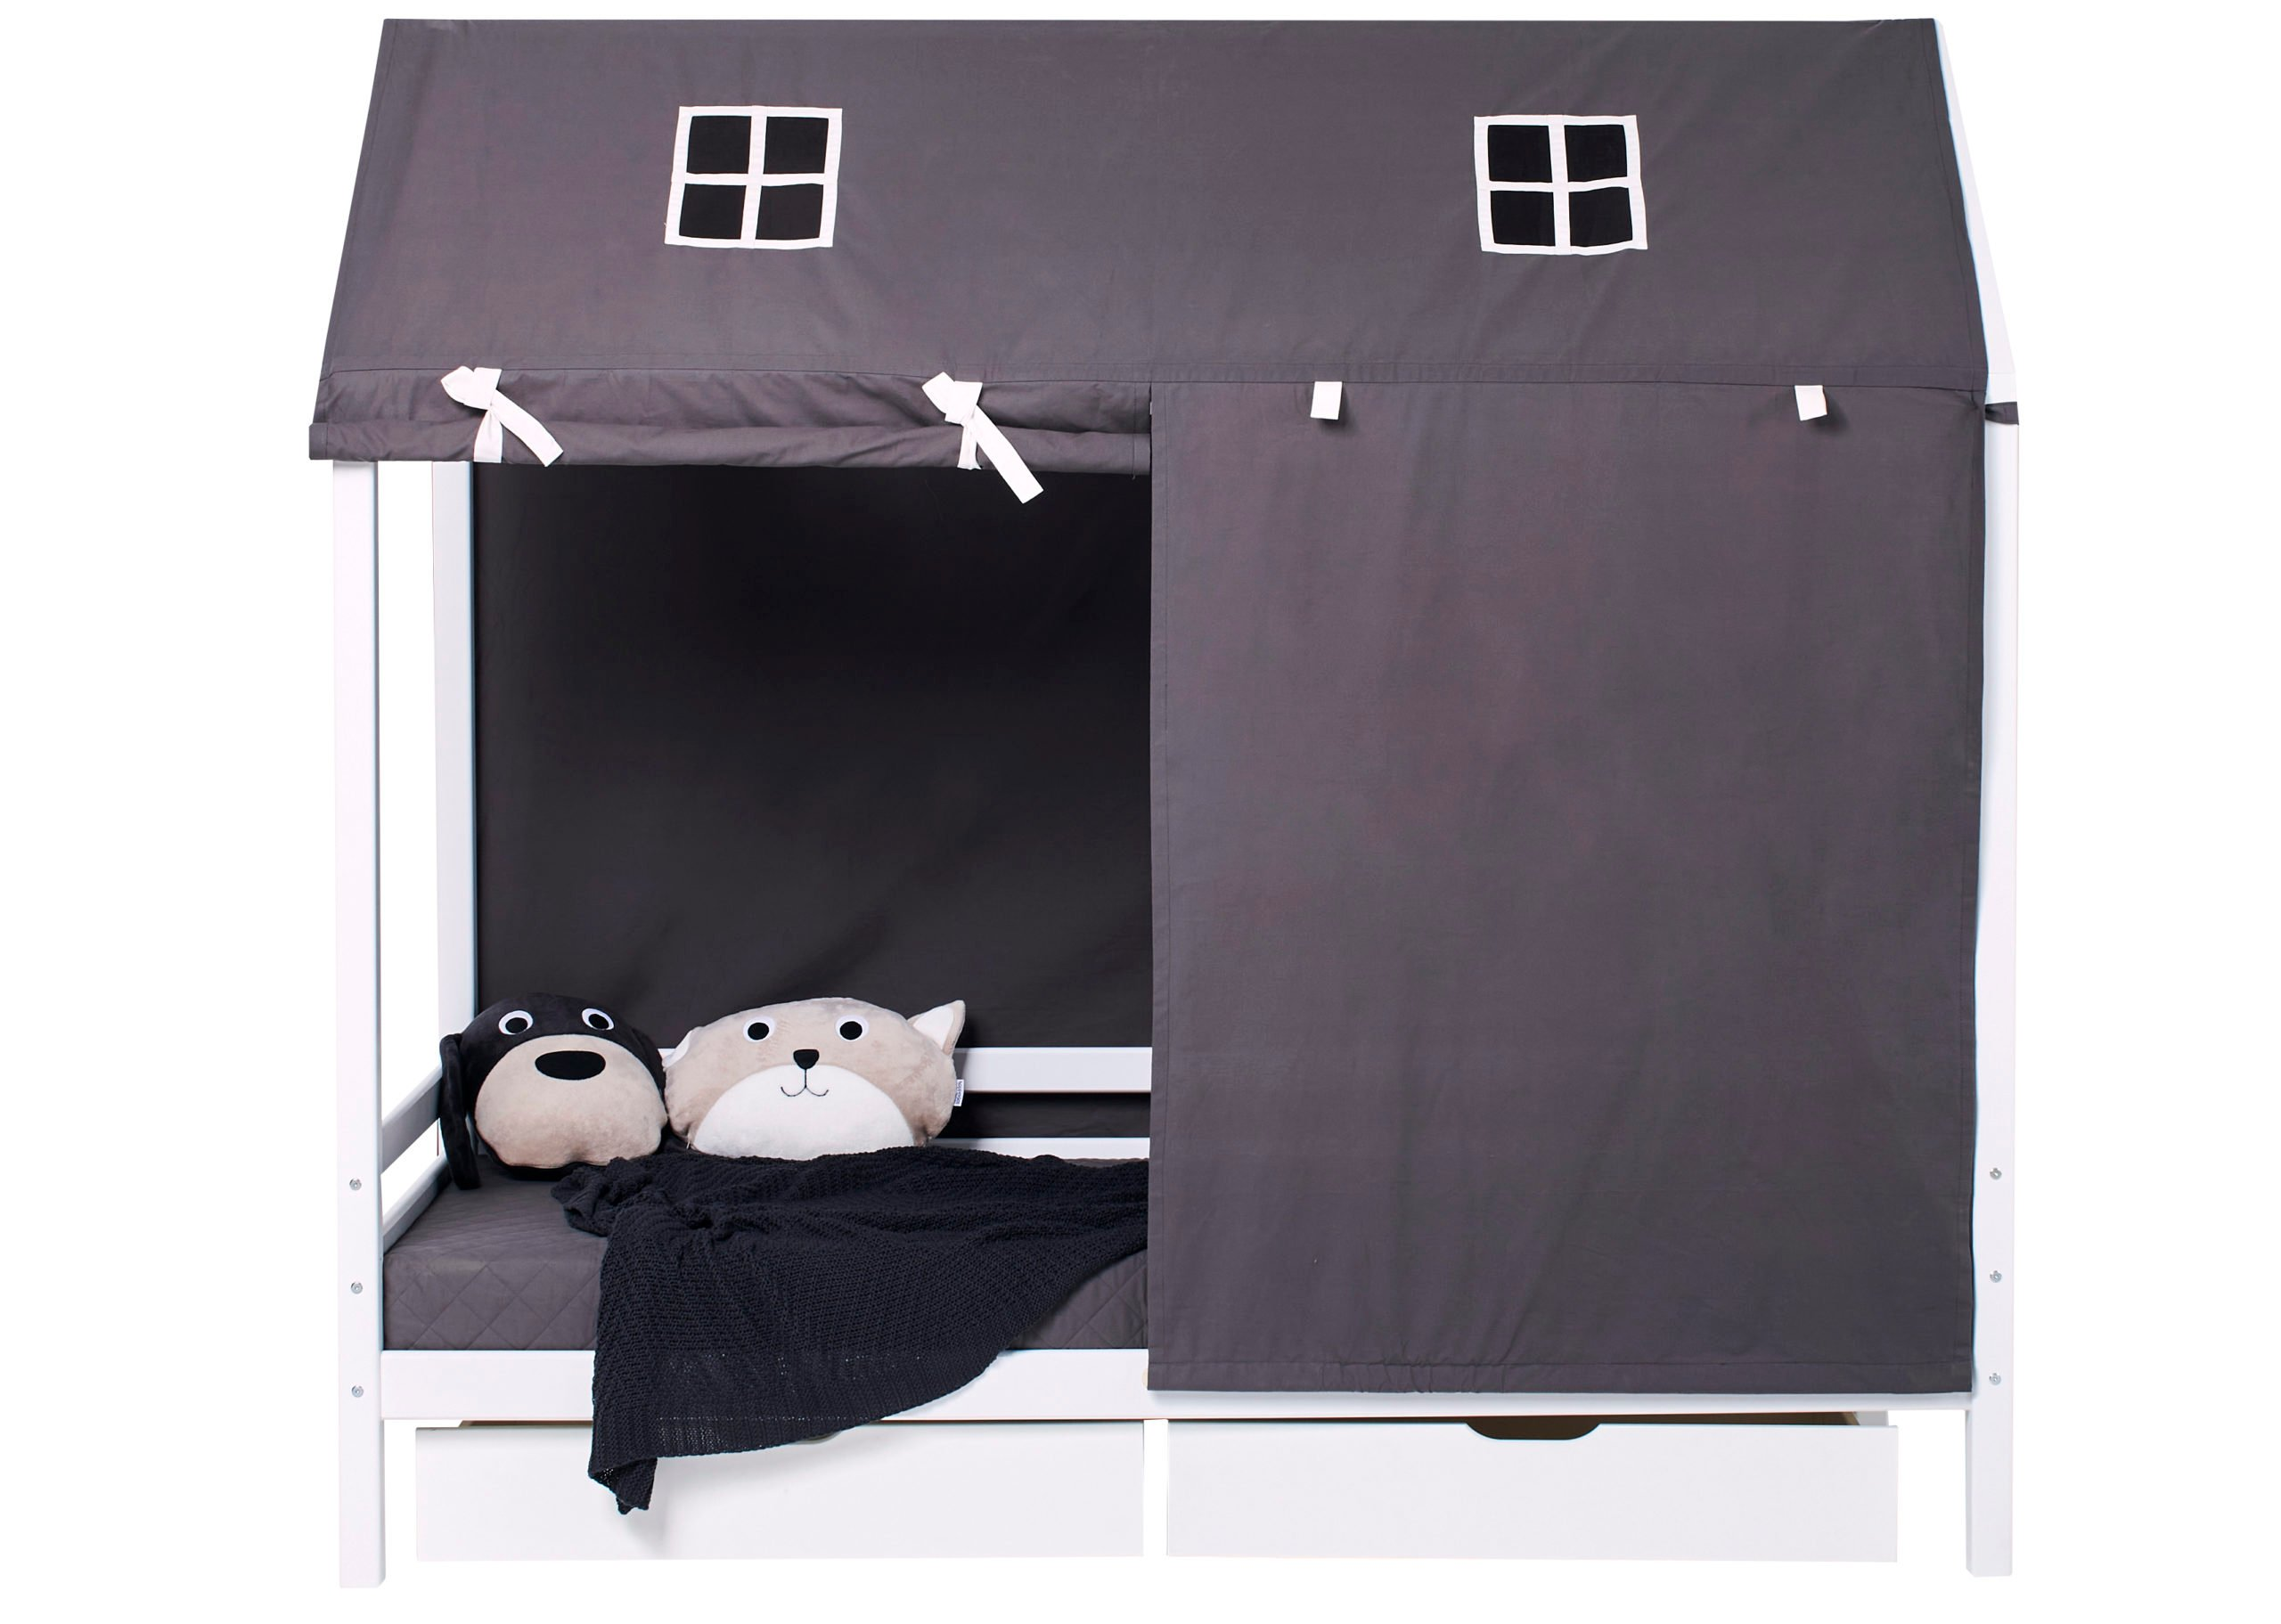 Hoppekids - Textile Roof Curtains for House Bed 90x200 cm - Pets Granite Grey